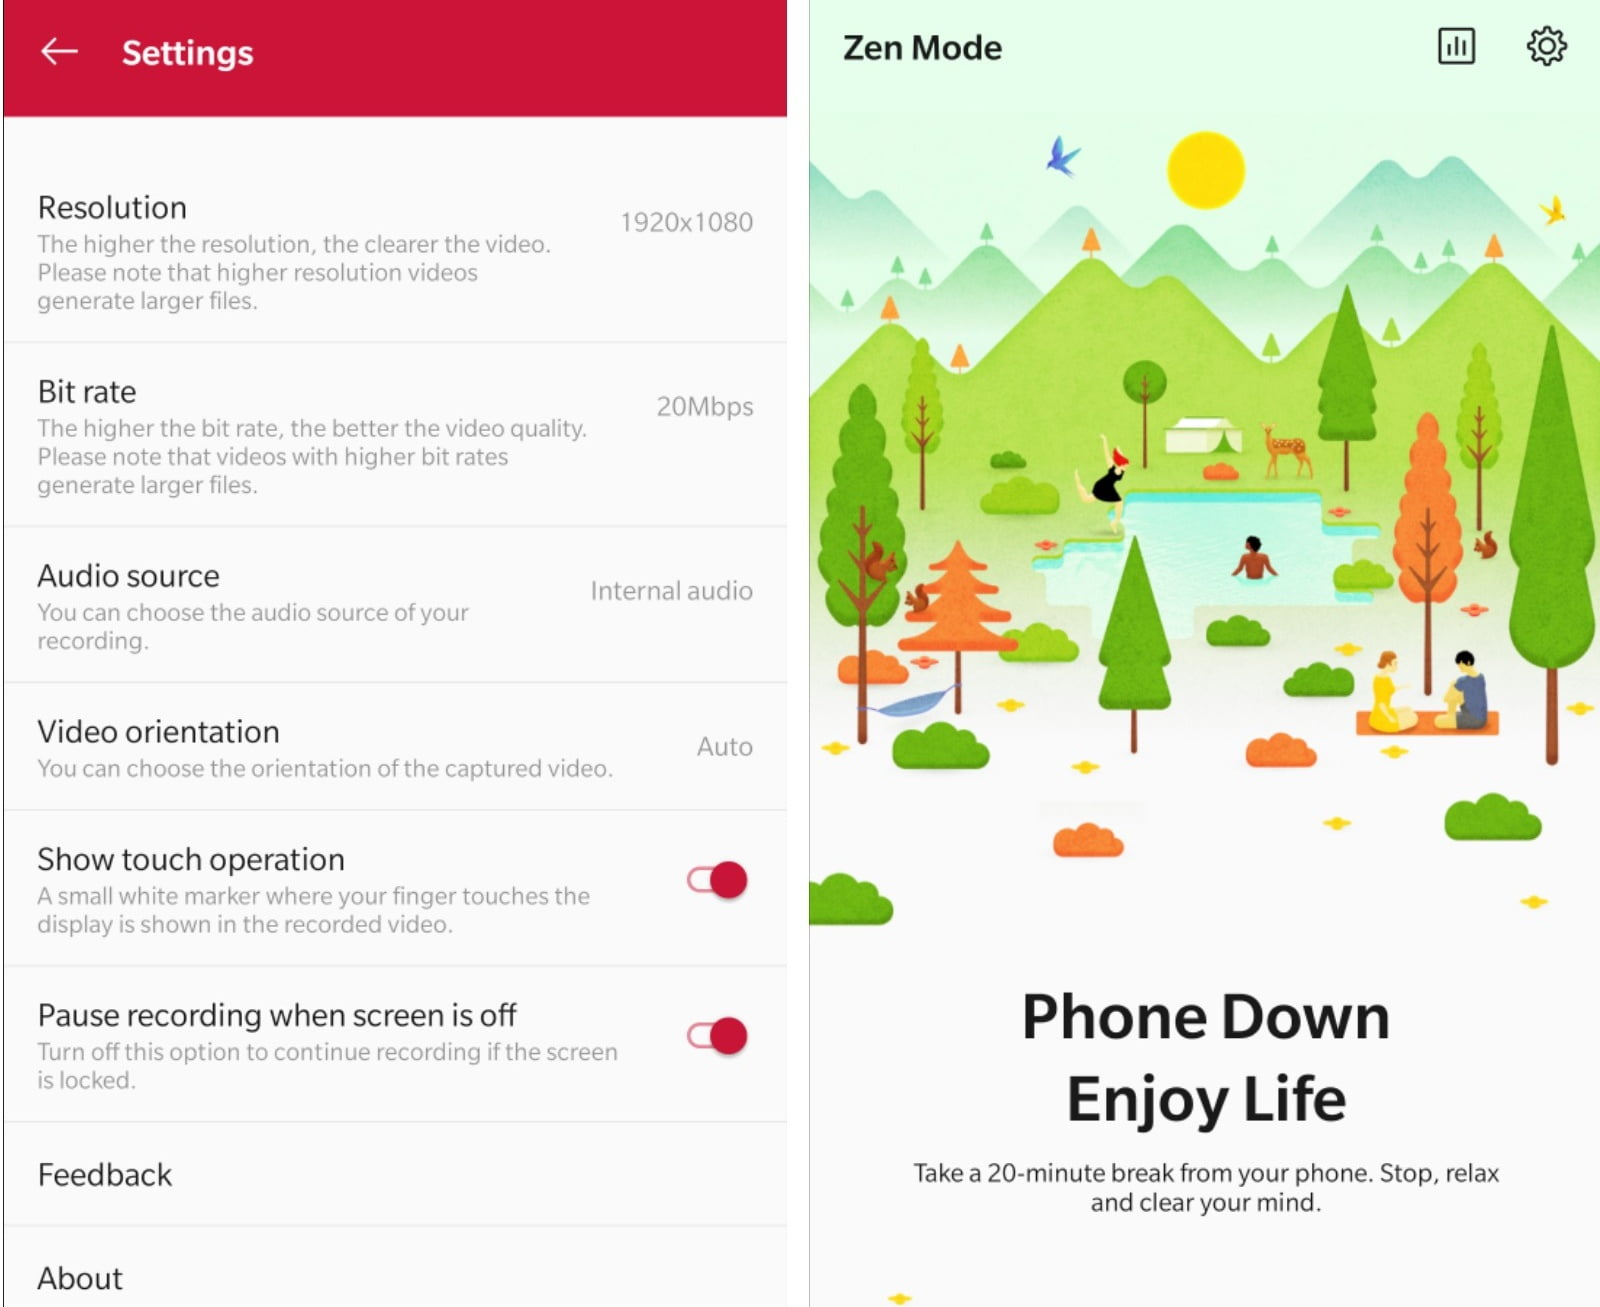 Download OnePlus's Screen Recorder & Zen Mode APK For Other